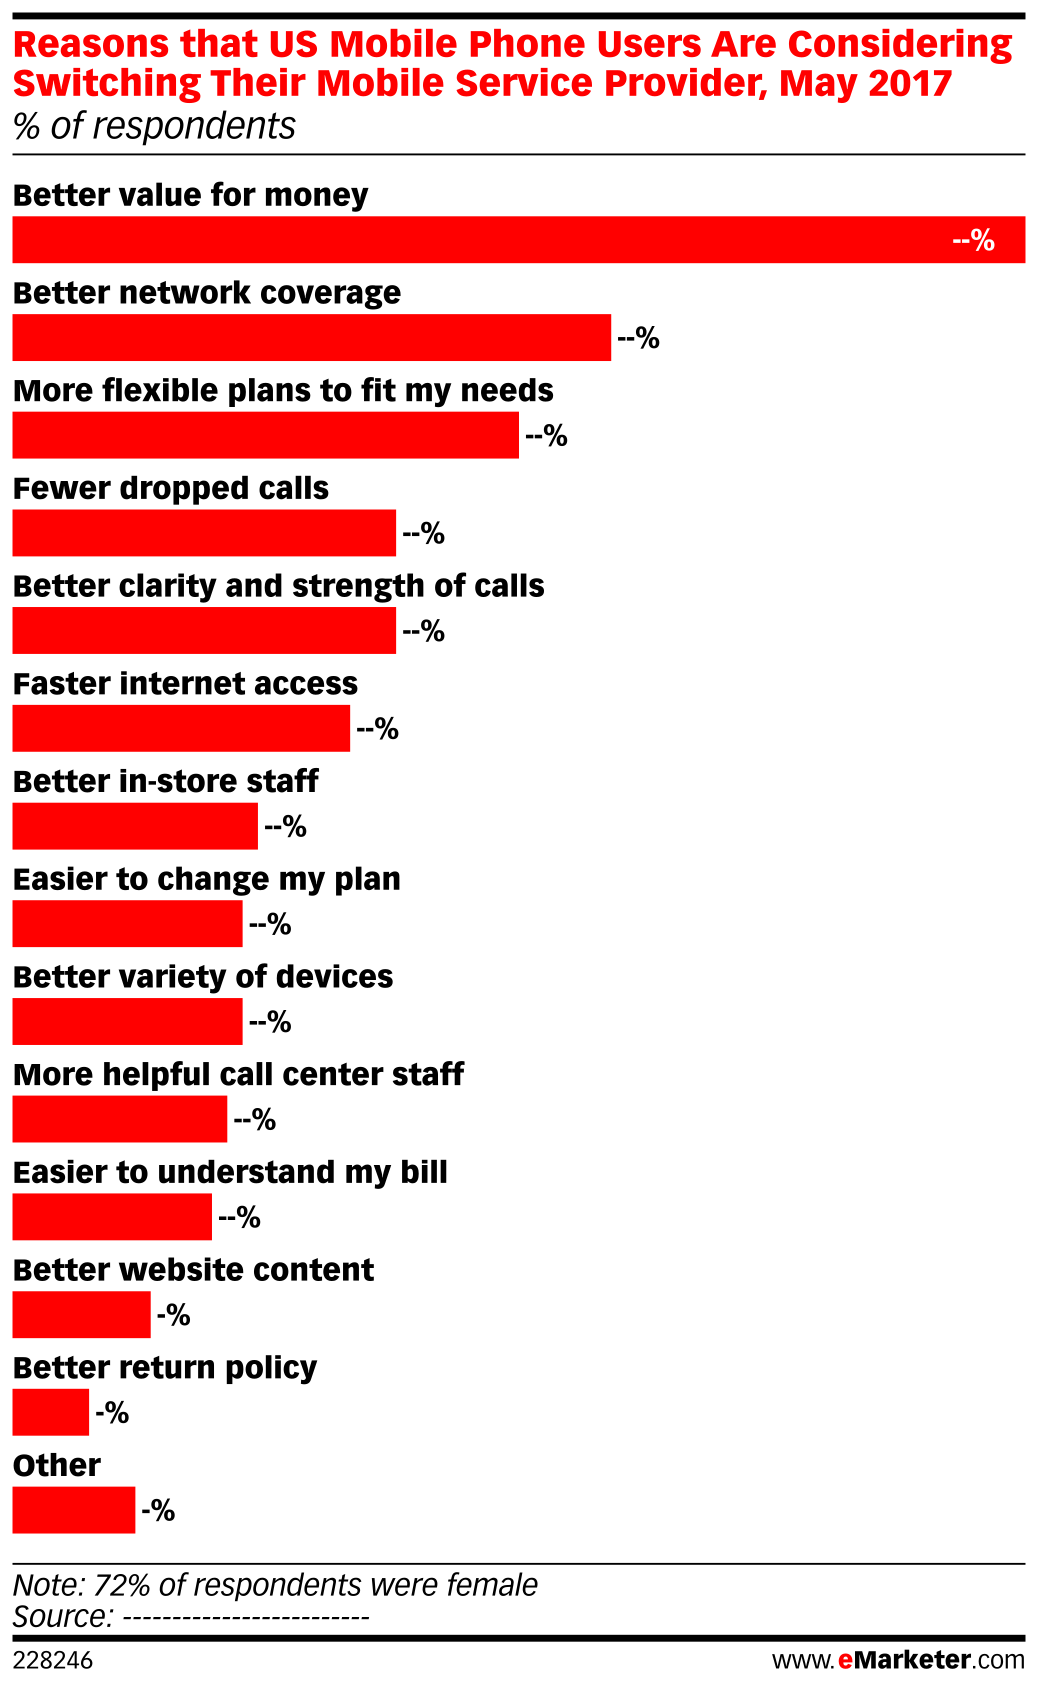 Reasons that US Mobile Phone Users Are Considering Switching Their Mobile Service Provider, May 2017 (% of respondents)